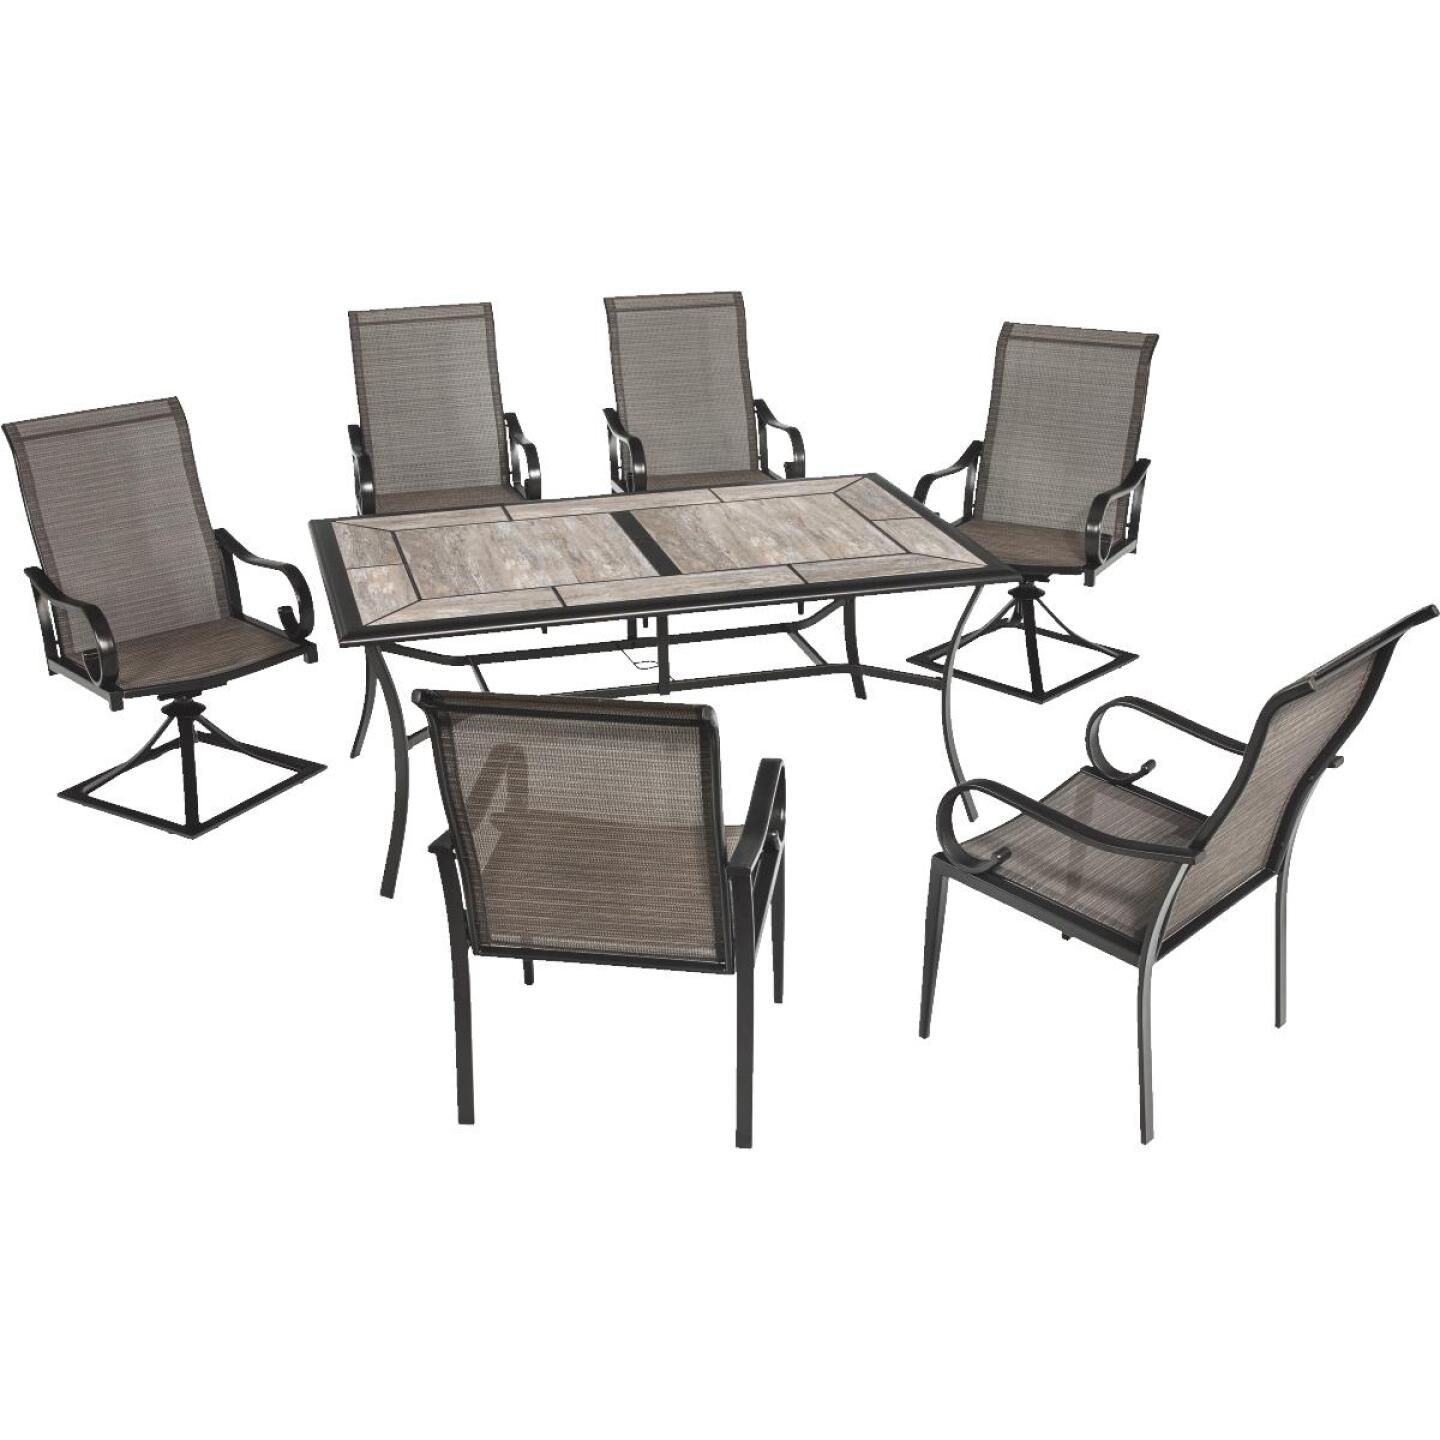 Outdoor Expressions Berkshire 7-Piece Dining Set Image 326